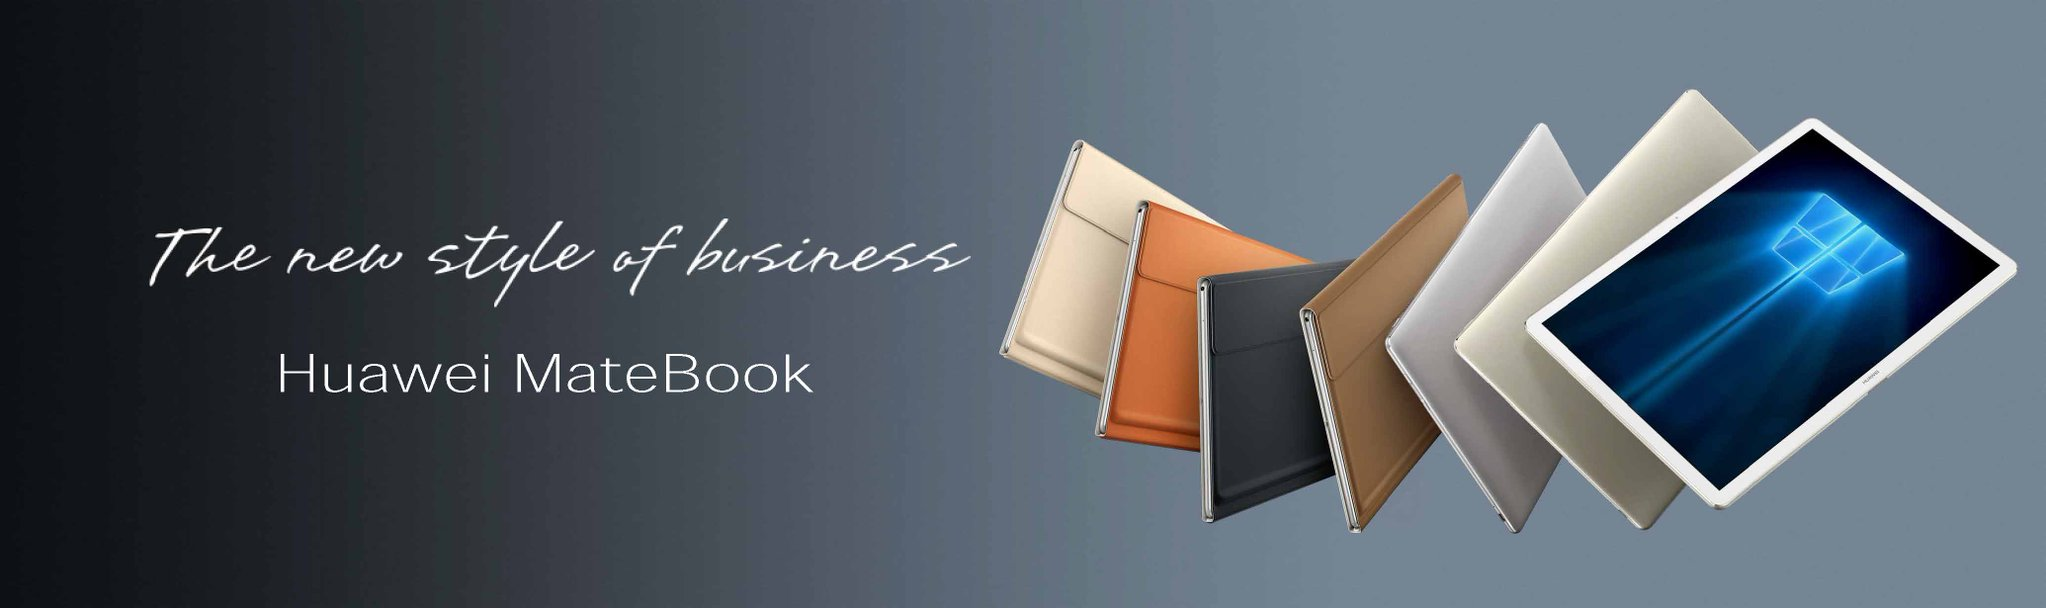 huawei-mate-book-colors MWC 2016: Huawei MateBook soll Surface Pro 4 und iPad Pro angreifen Computer Gadgets Microsoft Tablets YouTube Videos